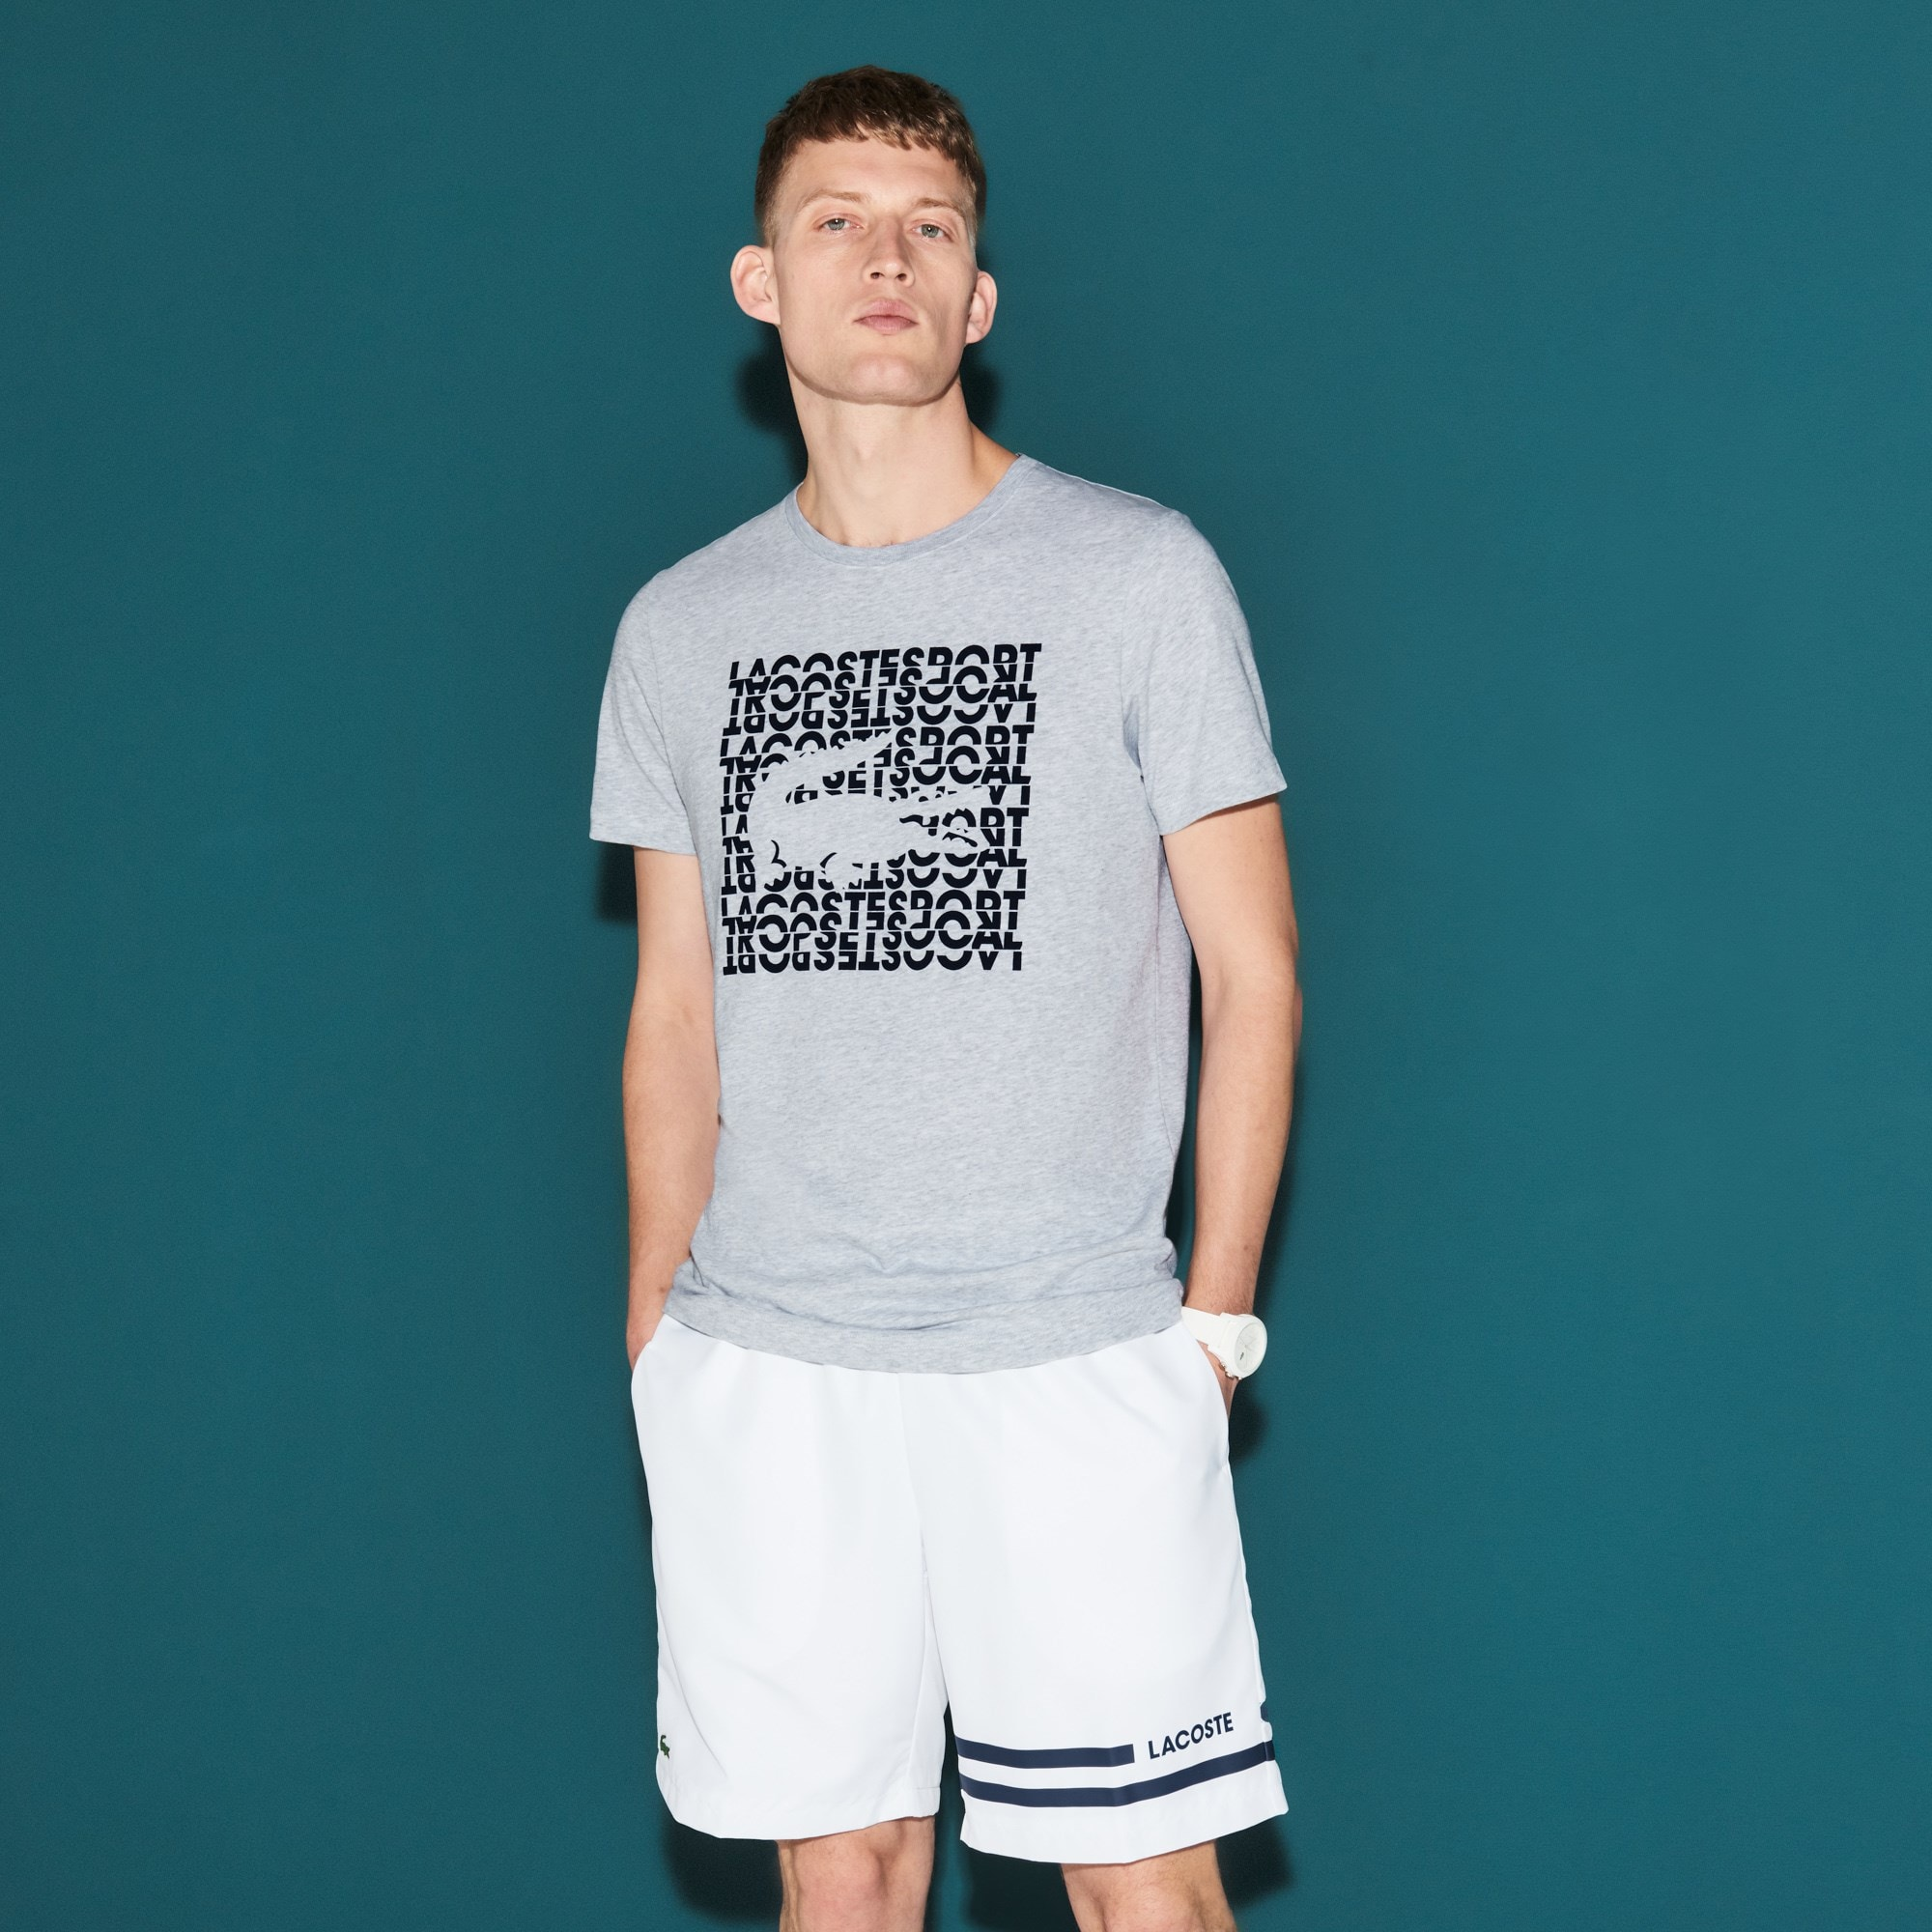 Men's Lacoste SPORT Logo Technical Jersey Tennis T-shirt